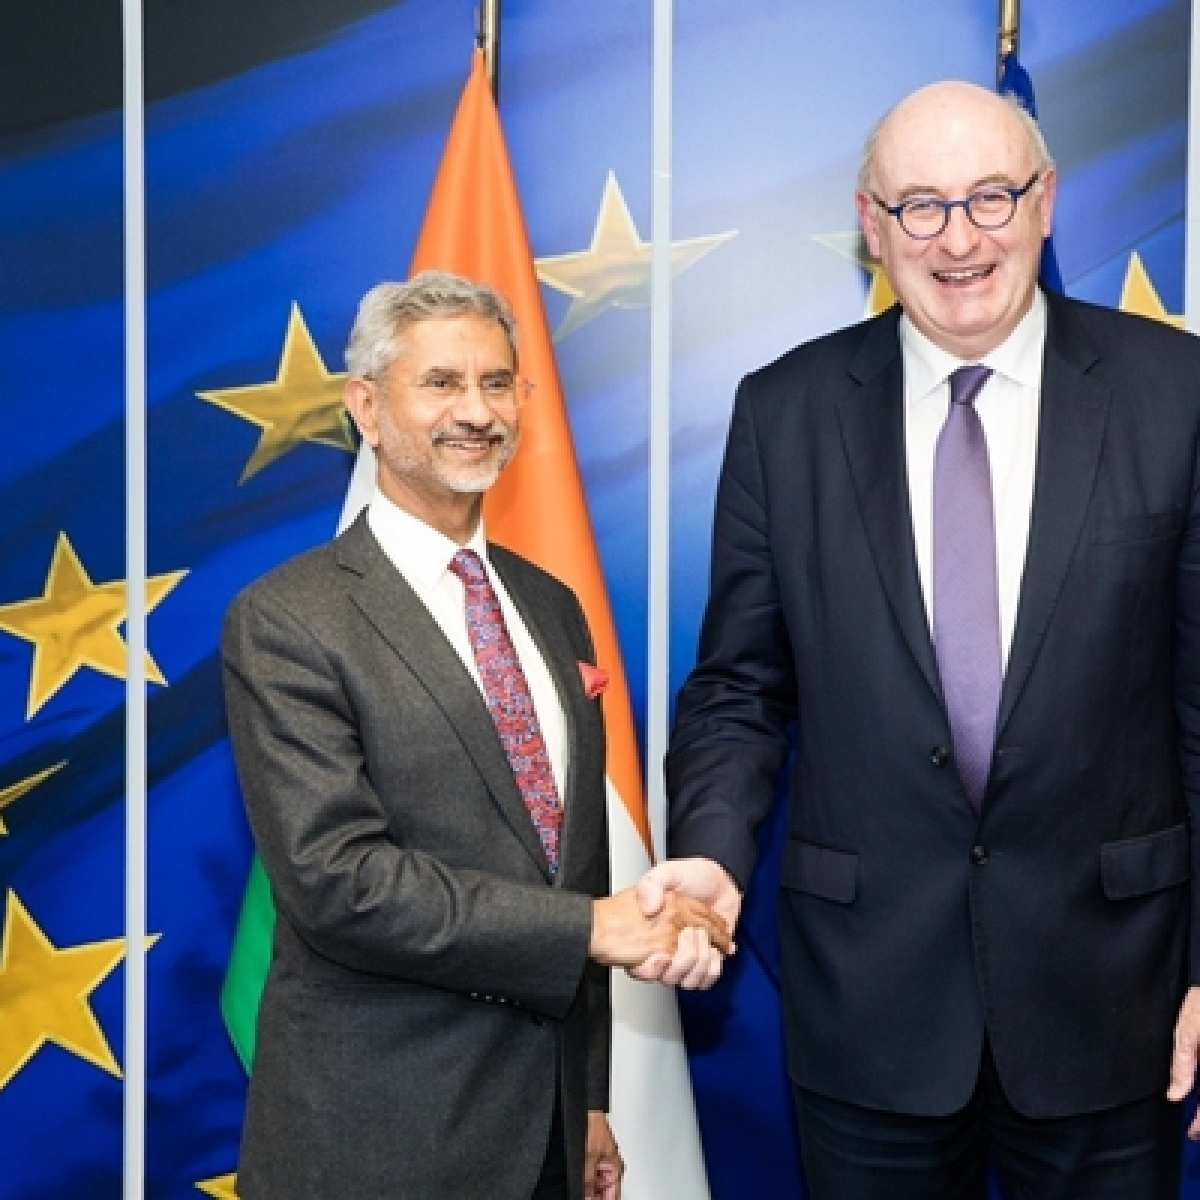 Jaishankar, EU Trade commissioner Phil Hogan discuss prospects for India-European economic cooperation